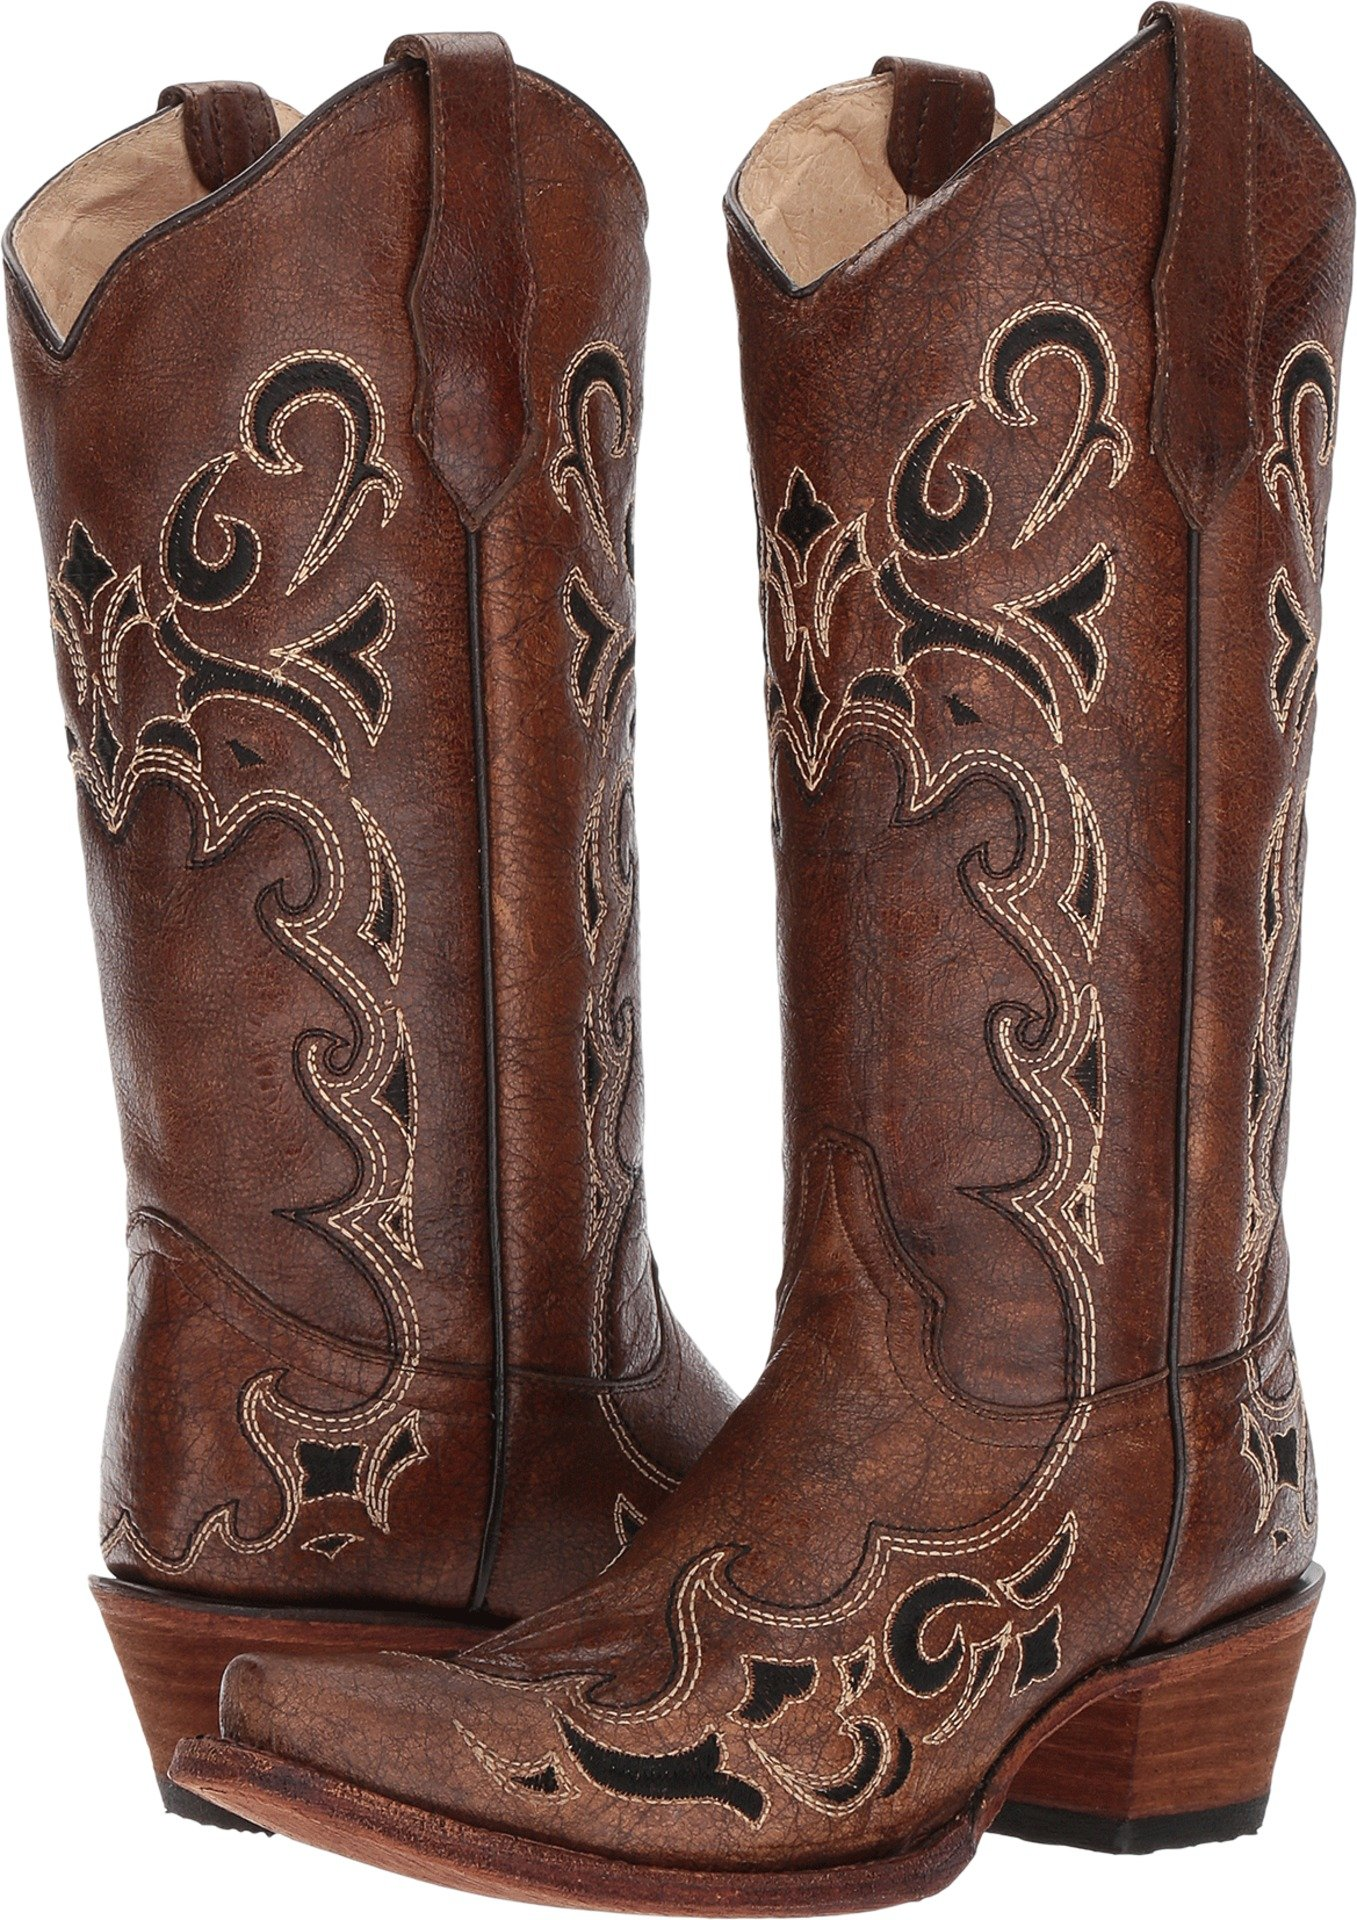 Corral Women's Honey Side Embroidered Boot Snip Toe Honey 9 M